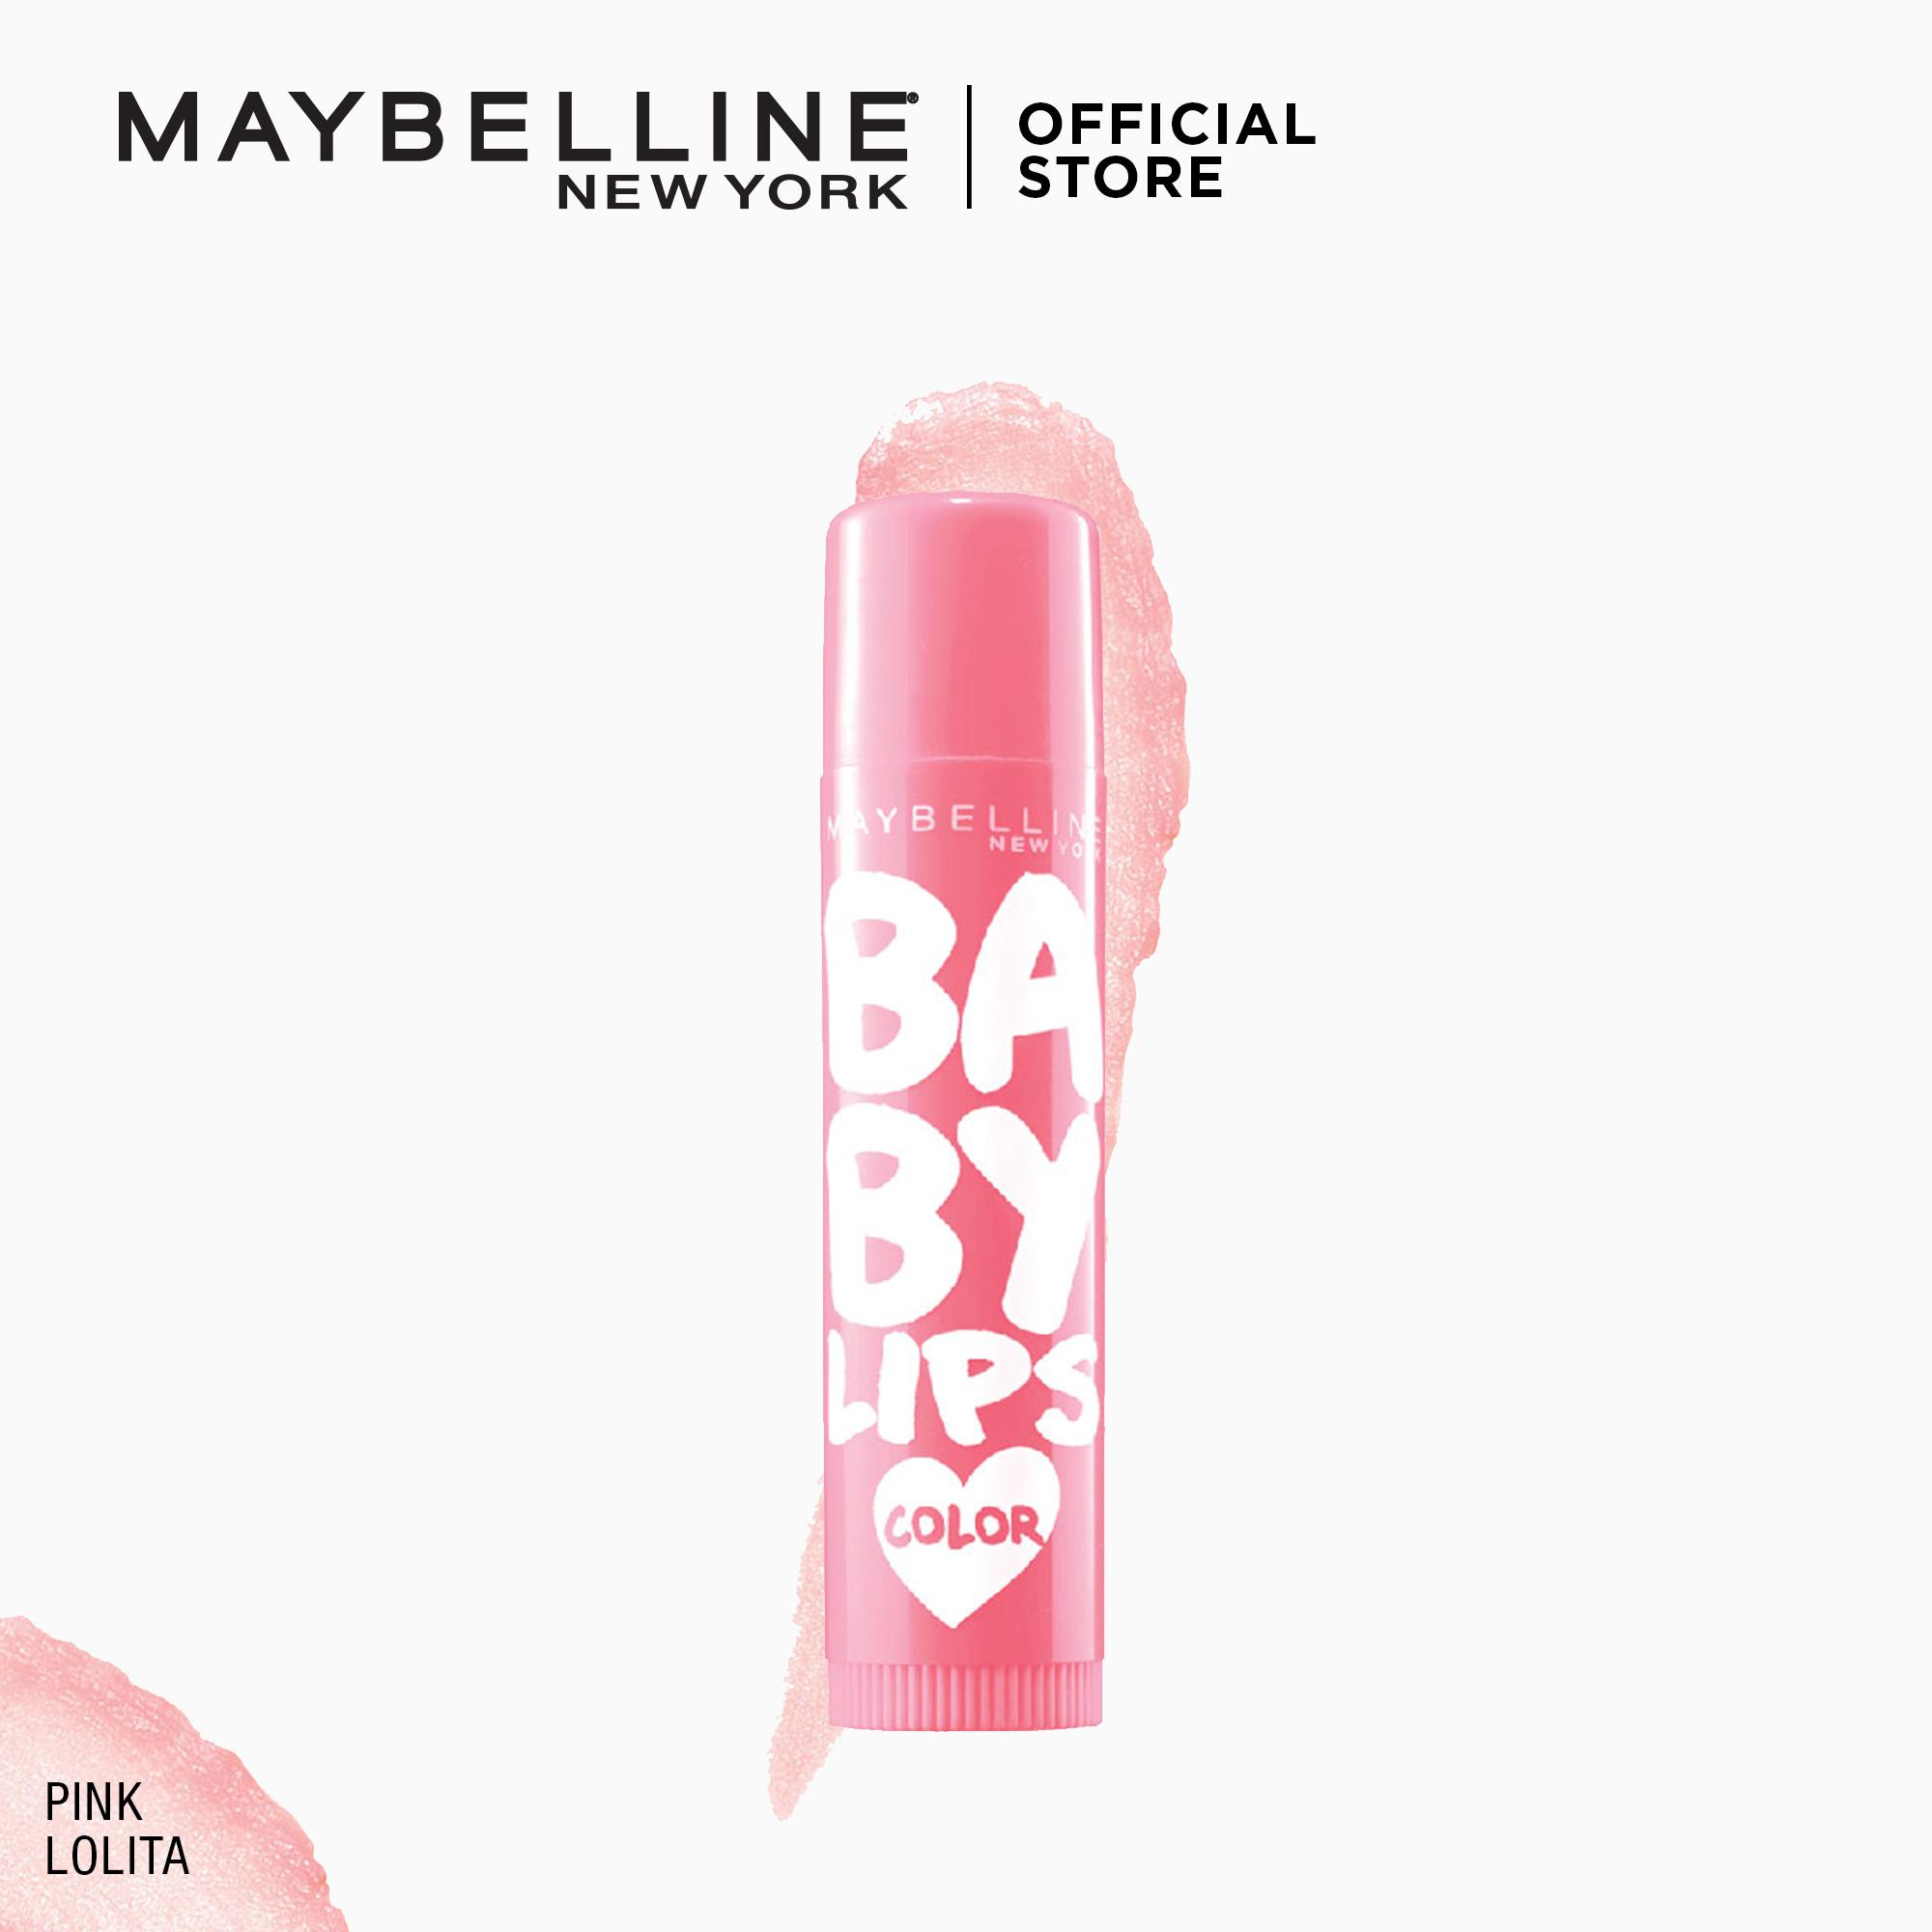 Lip Balm Brands Treatment On Sale Prices Set Reviews In Vaseline Therapy Tiny Tube Rosy Lips Maybelline Baby Loves Color Pink Lolita